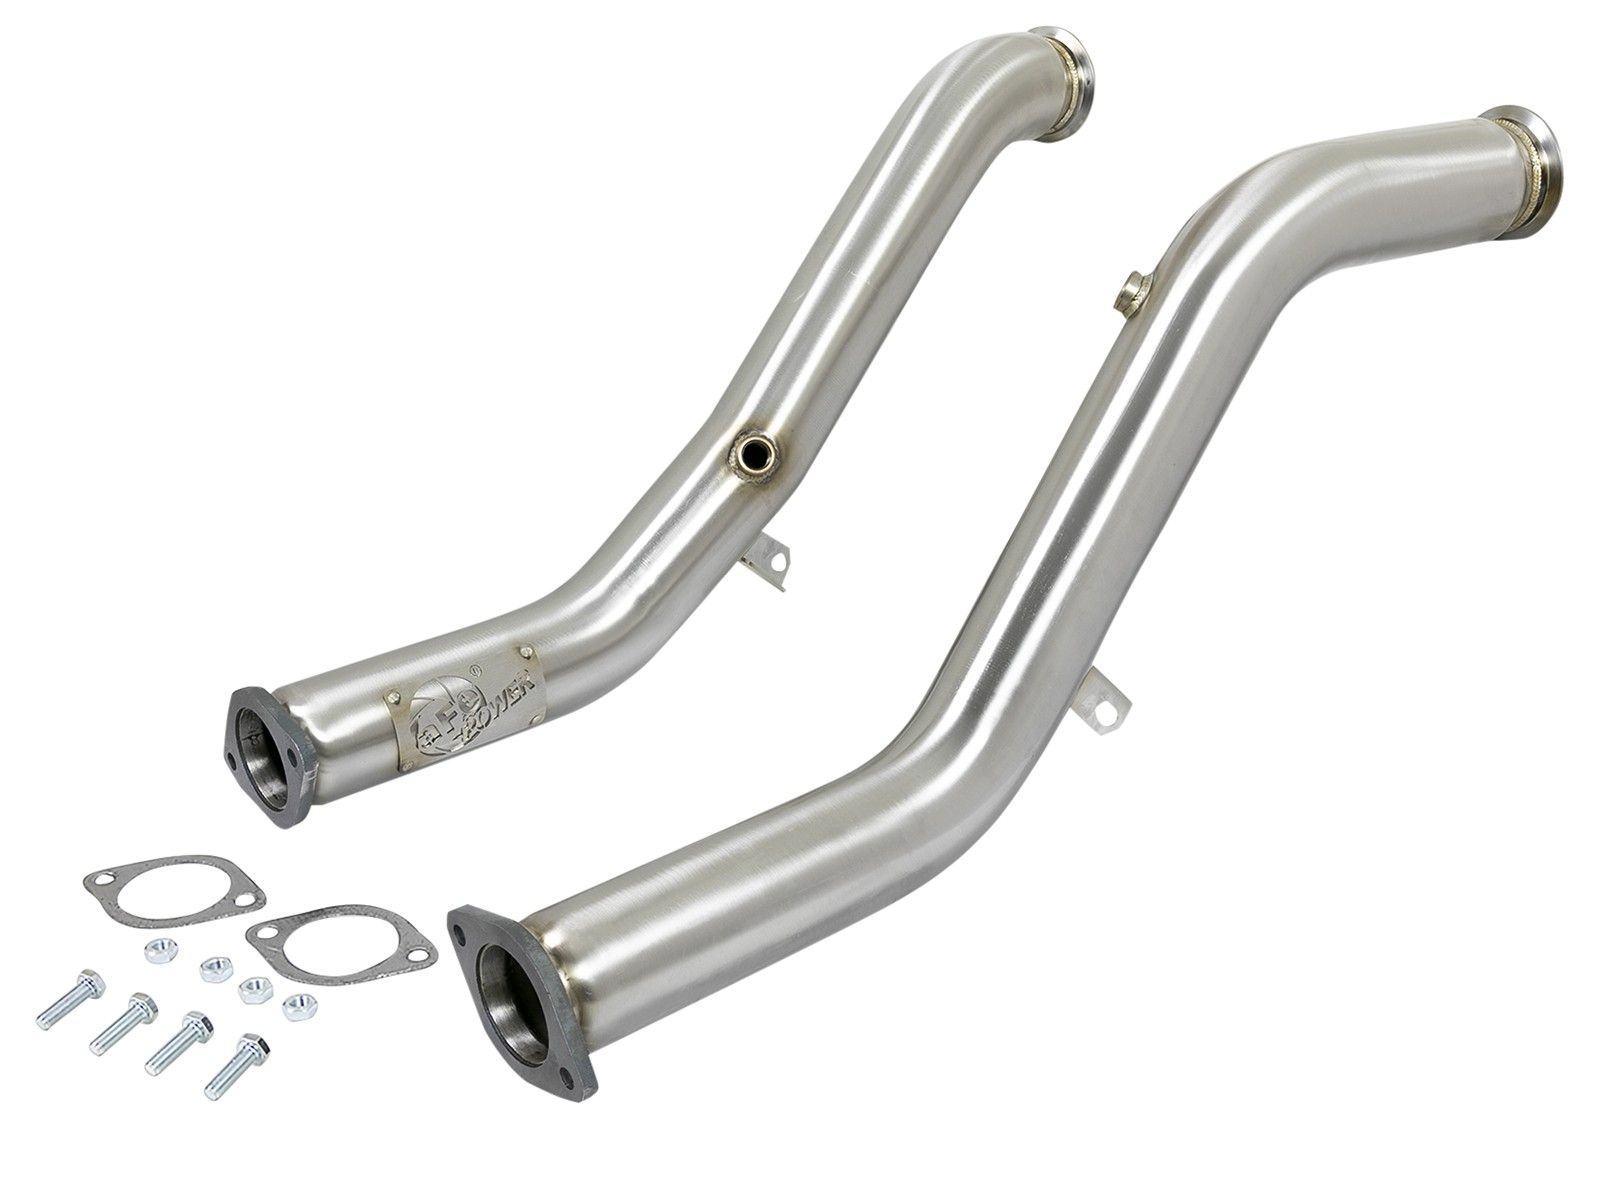 "aFe Power Twtist Steel Down-Pipes, Race Series 3""  - Infiniti Q50 / Q60 3.0t Premium / Red Sport RS400 VR30DDTT"